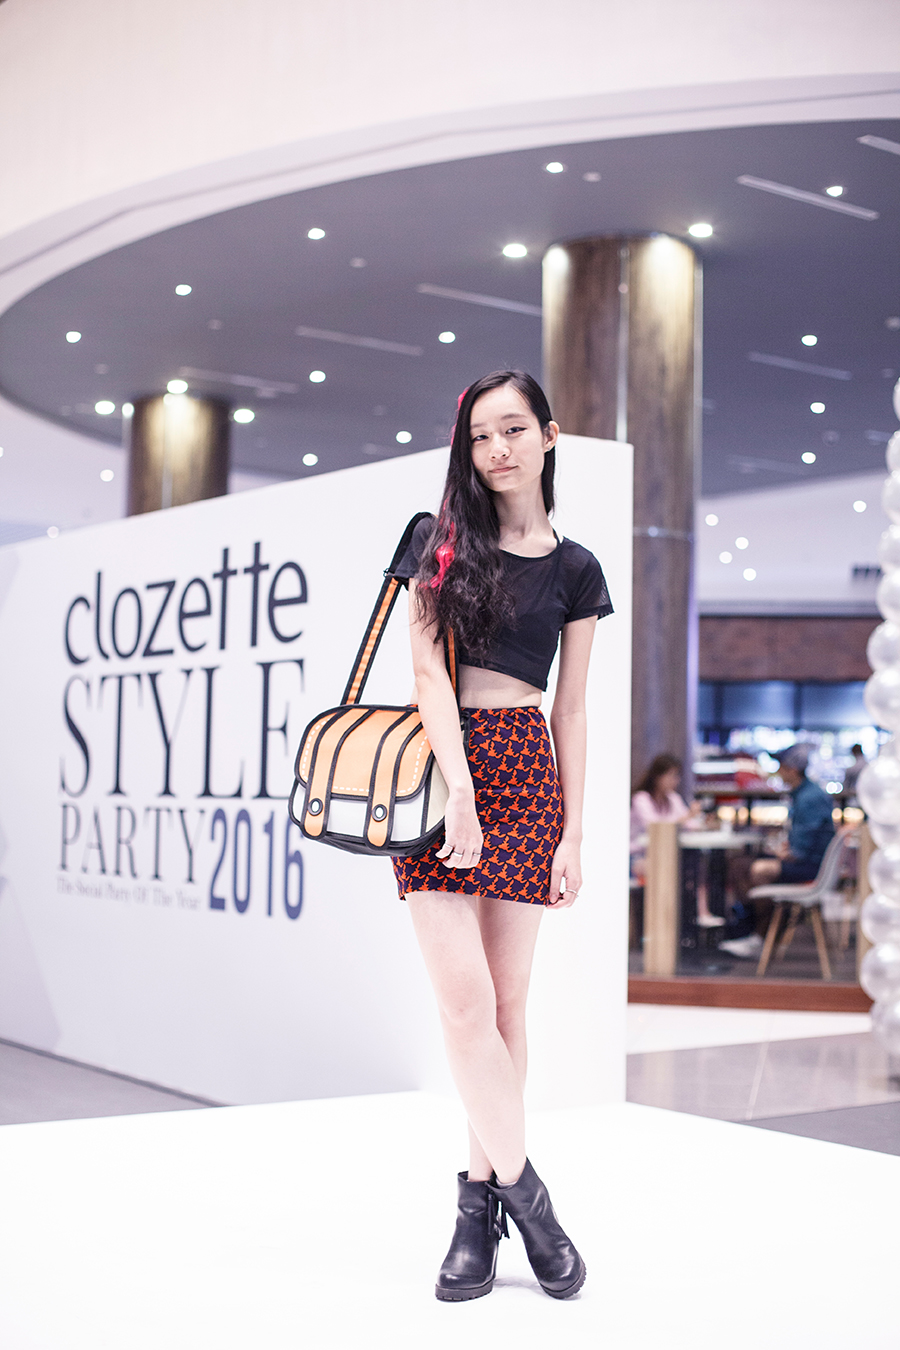 OOTD at Clozette Style Party 2016 in Suntec City. #ClozetteStyleParty